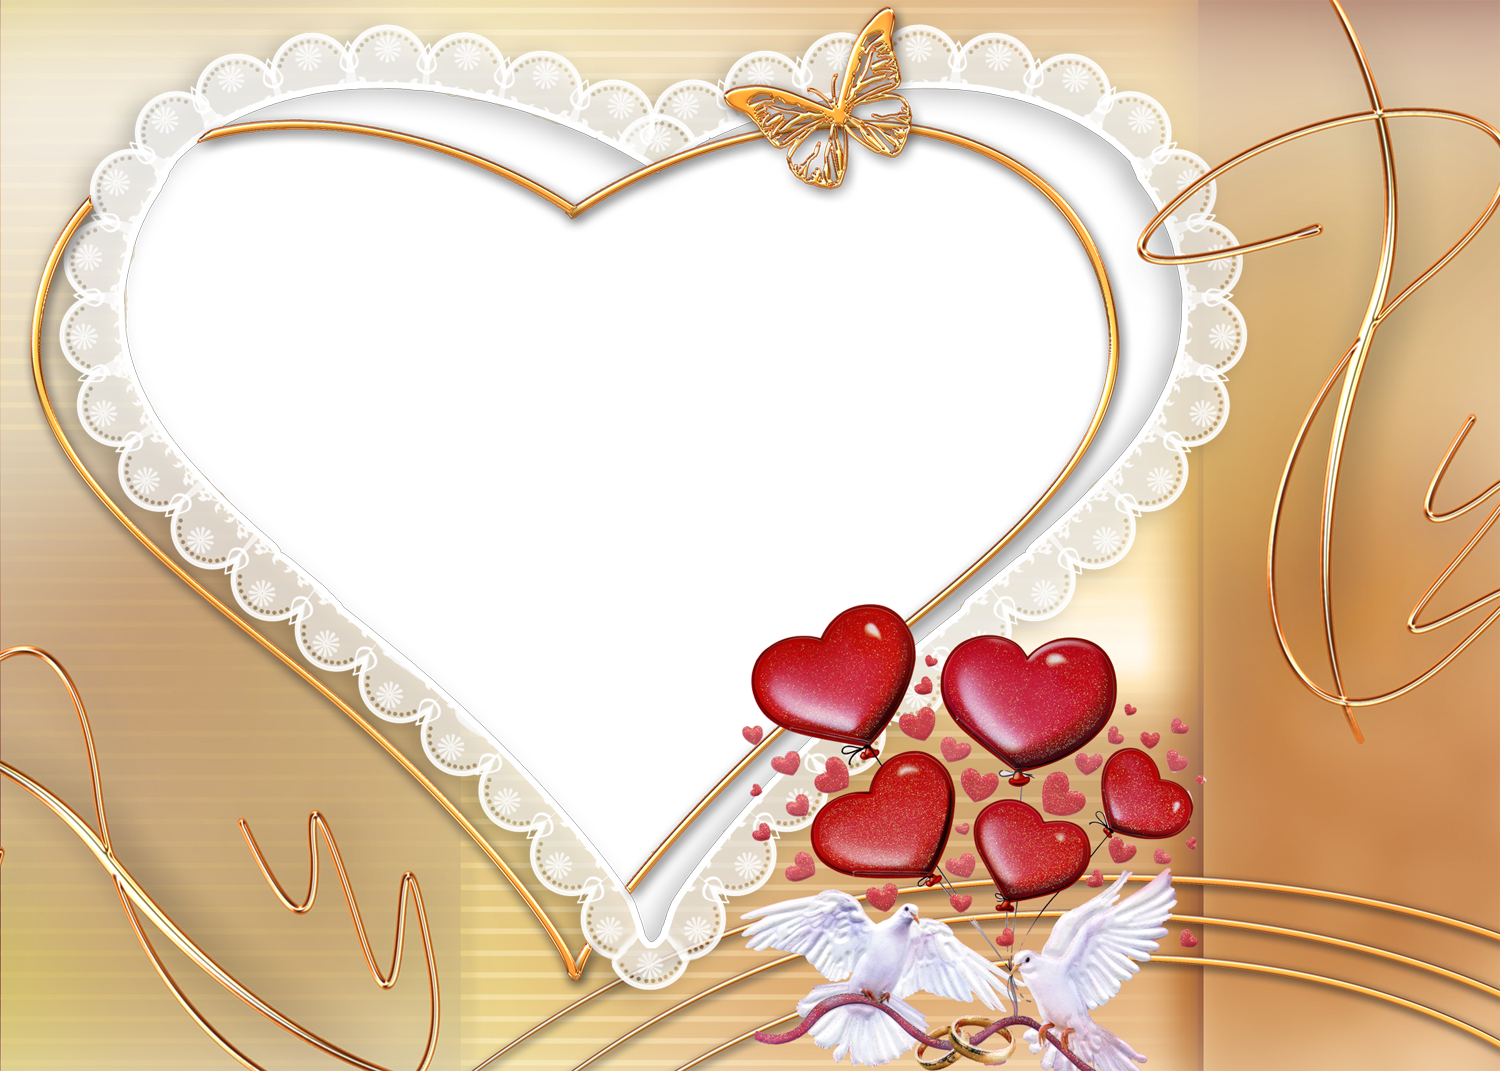 Picture Frame Love Wallpaper: SYED IMRAN: Love Frames